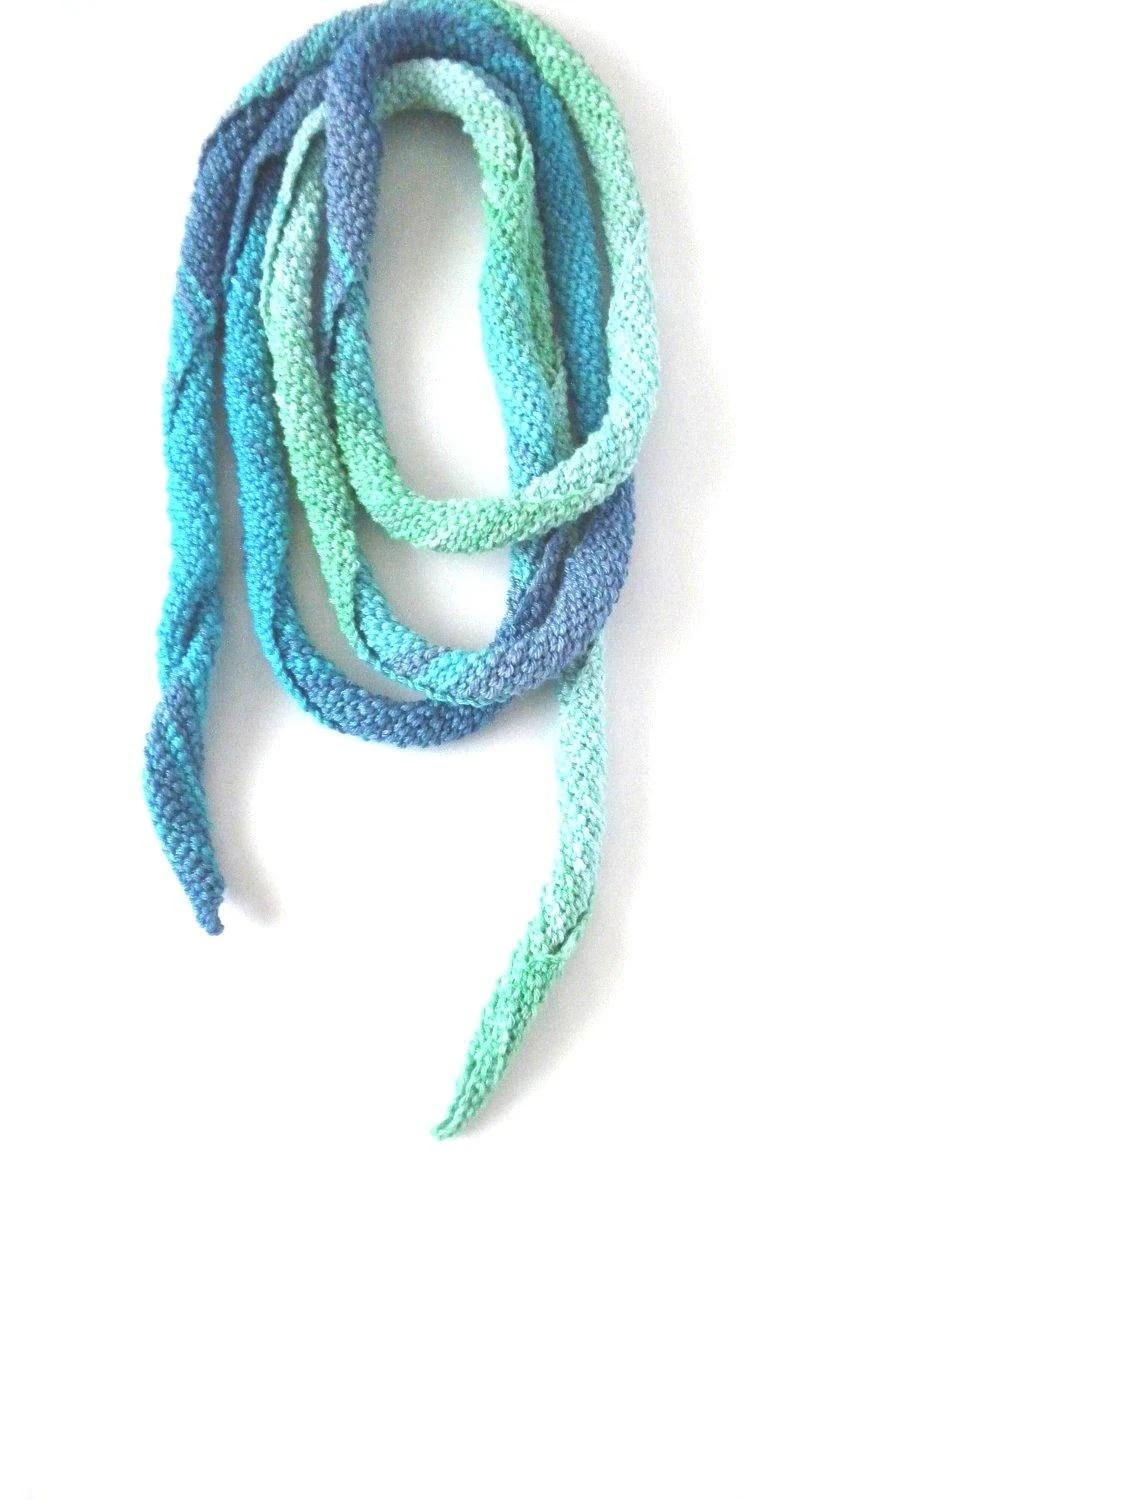 100% Mercerized Cotton Turquoise, Mint, Spiral, Skinny Scarf, Crochet, Necklace, Spring, Summer, Fall, Autumn Fashion - pippisLongstockings